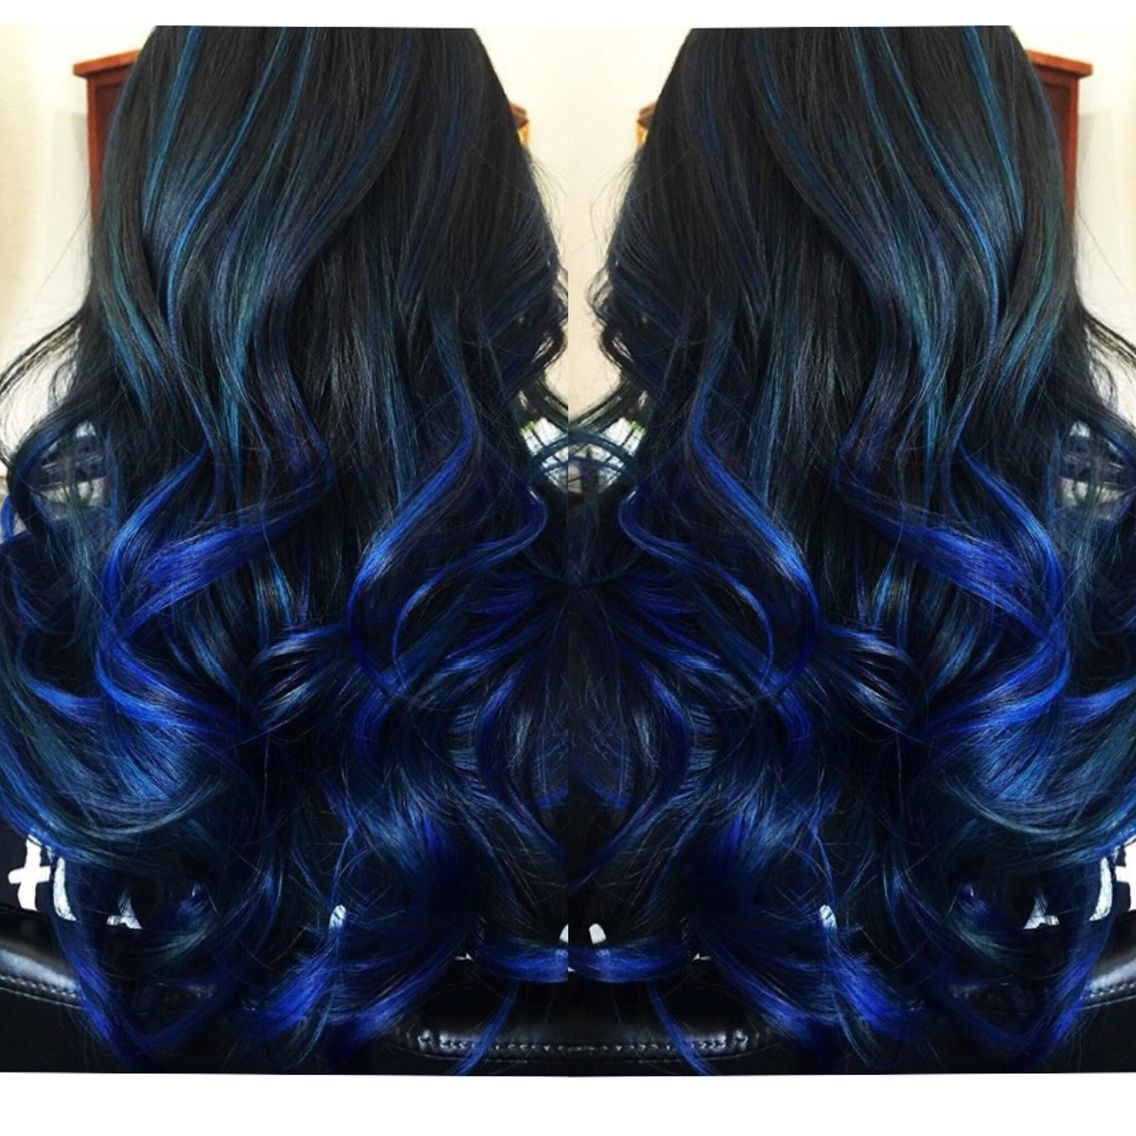 Blue Hair Balayage Ombre By Jessica Salonink Blue Hair Balayage